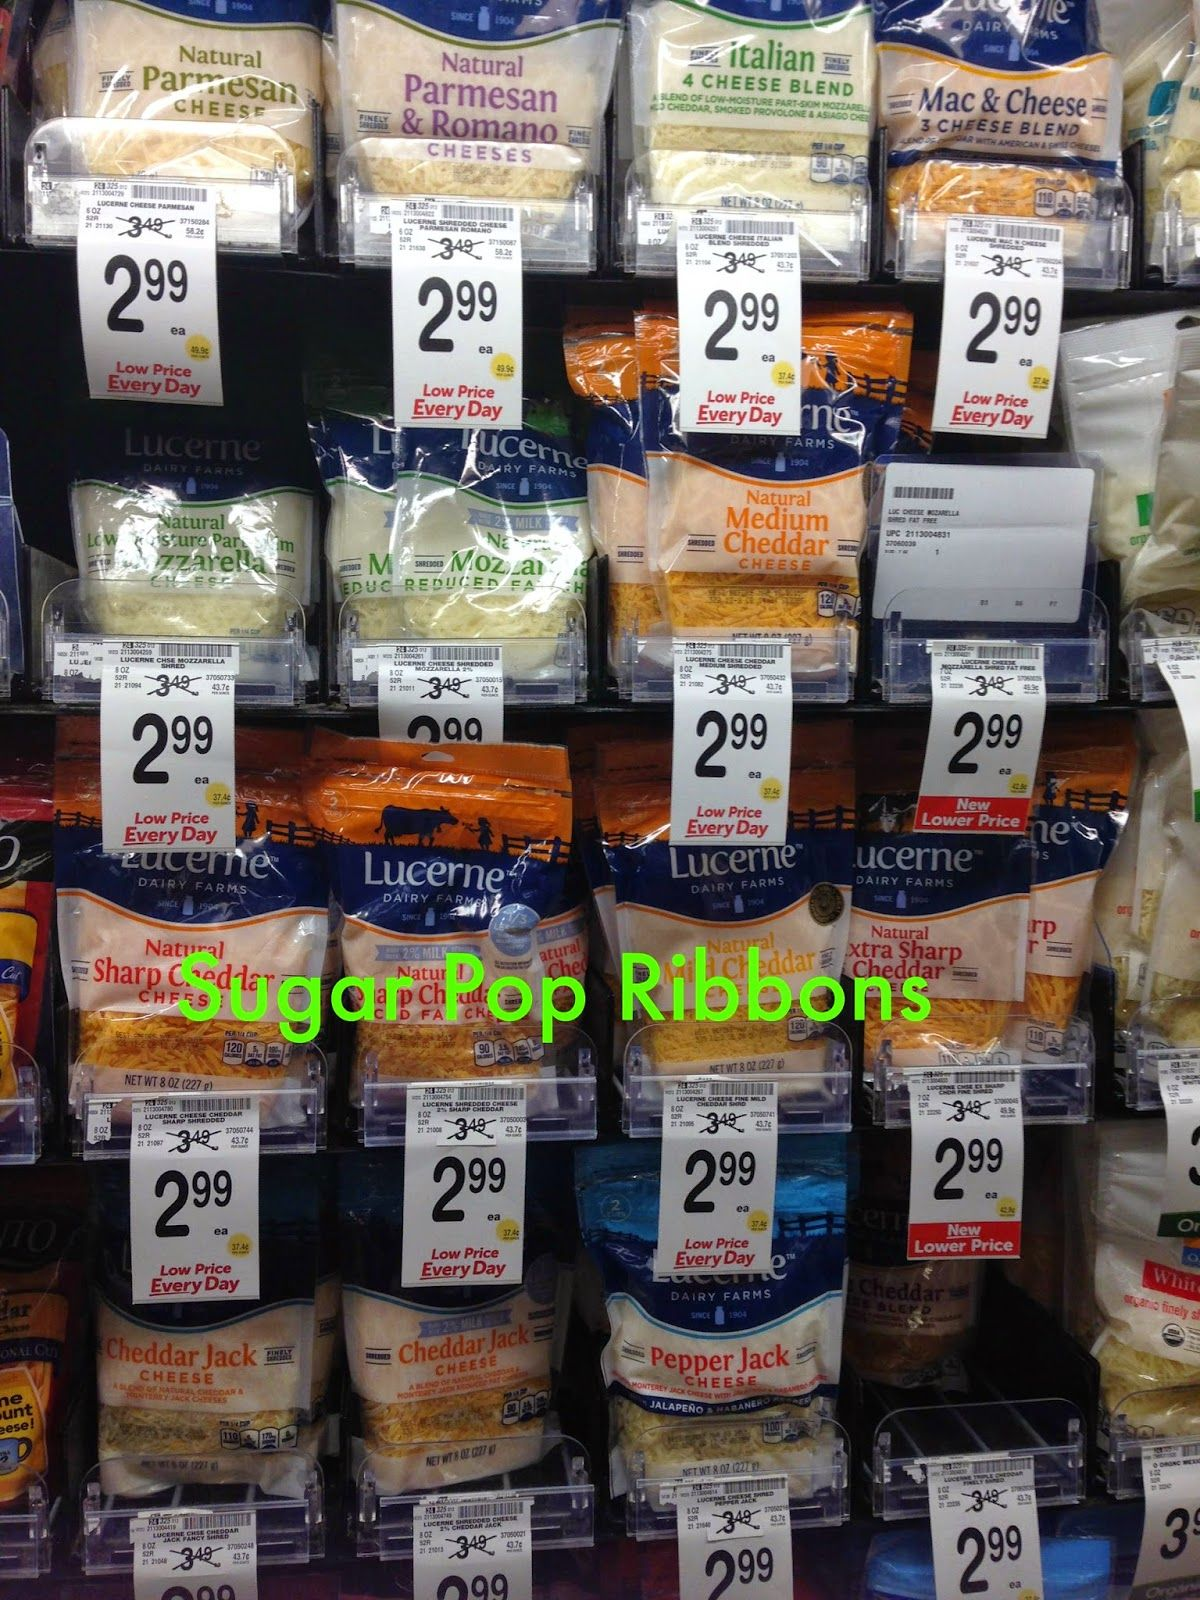 Vons Gift Card Giveaway on Sugar Pop Ribbons - Prize: $110 Vons ...